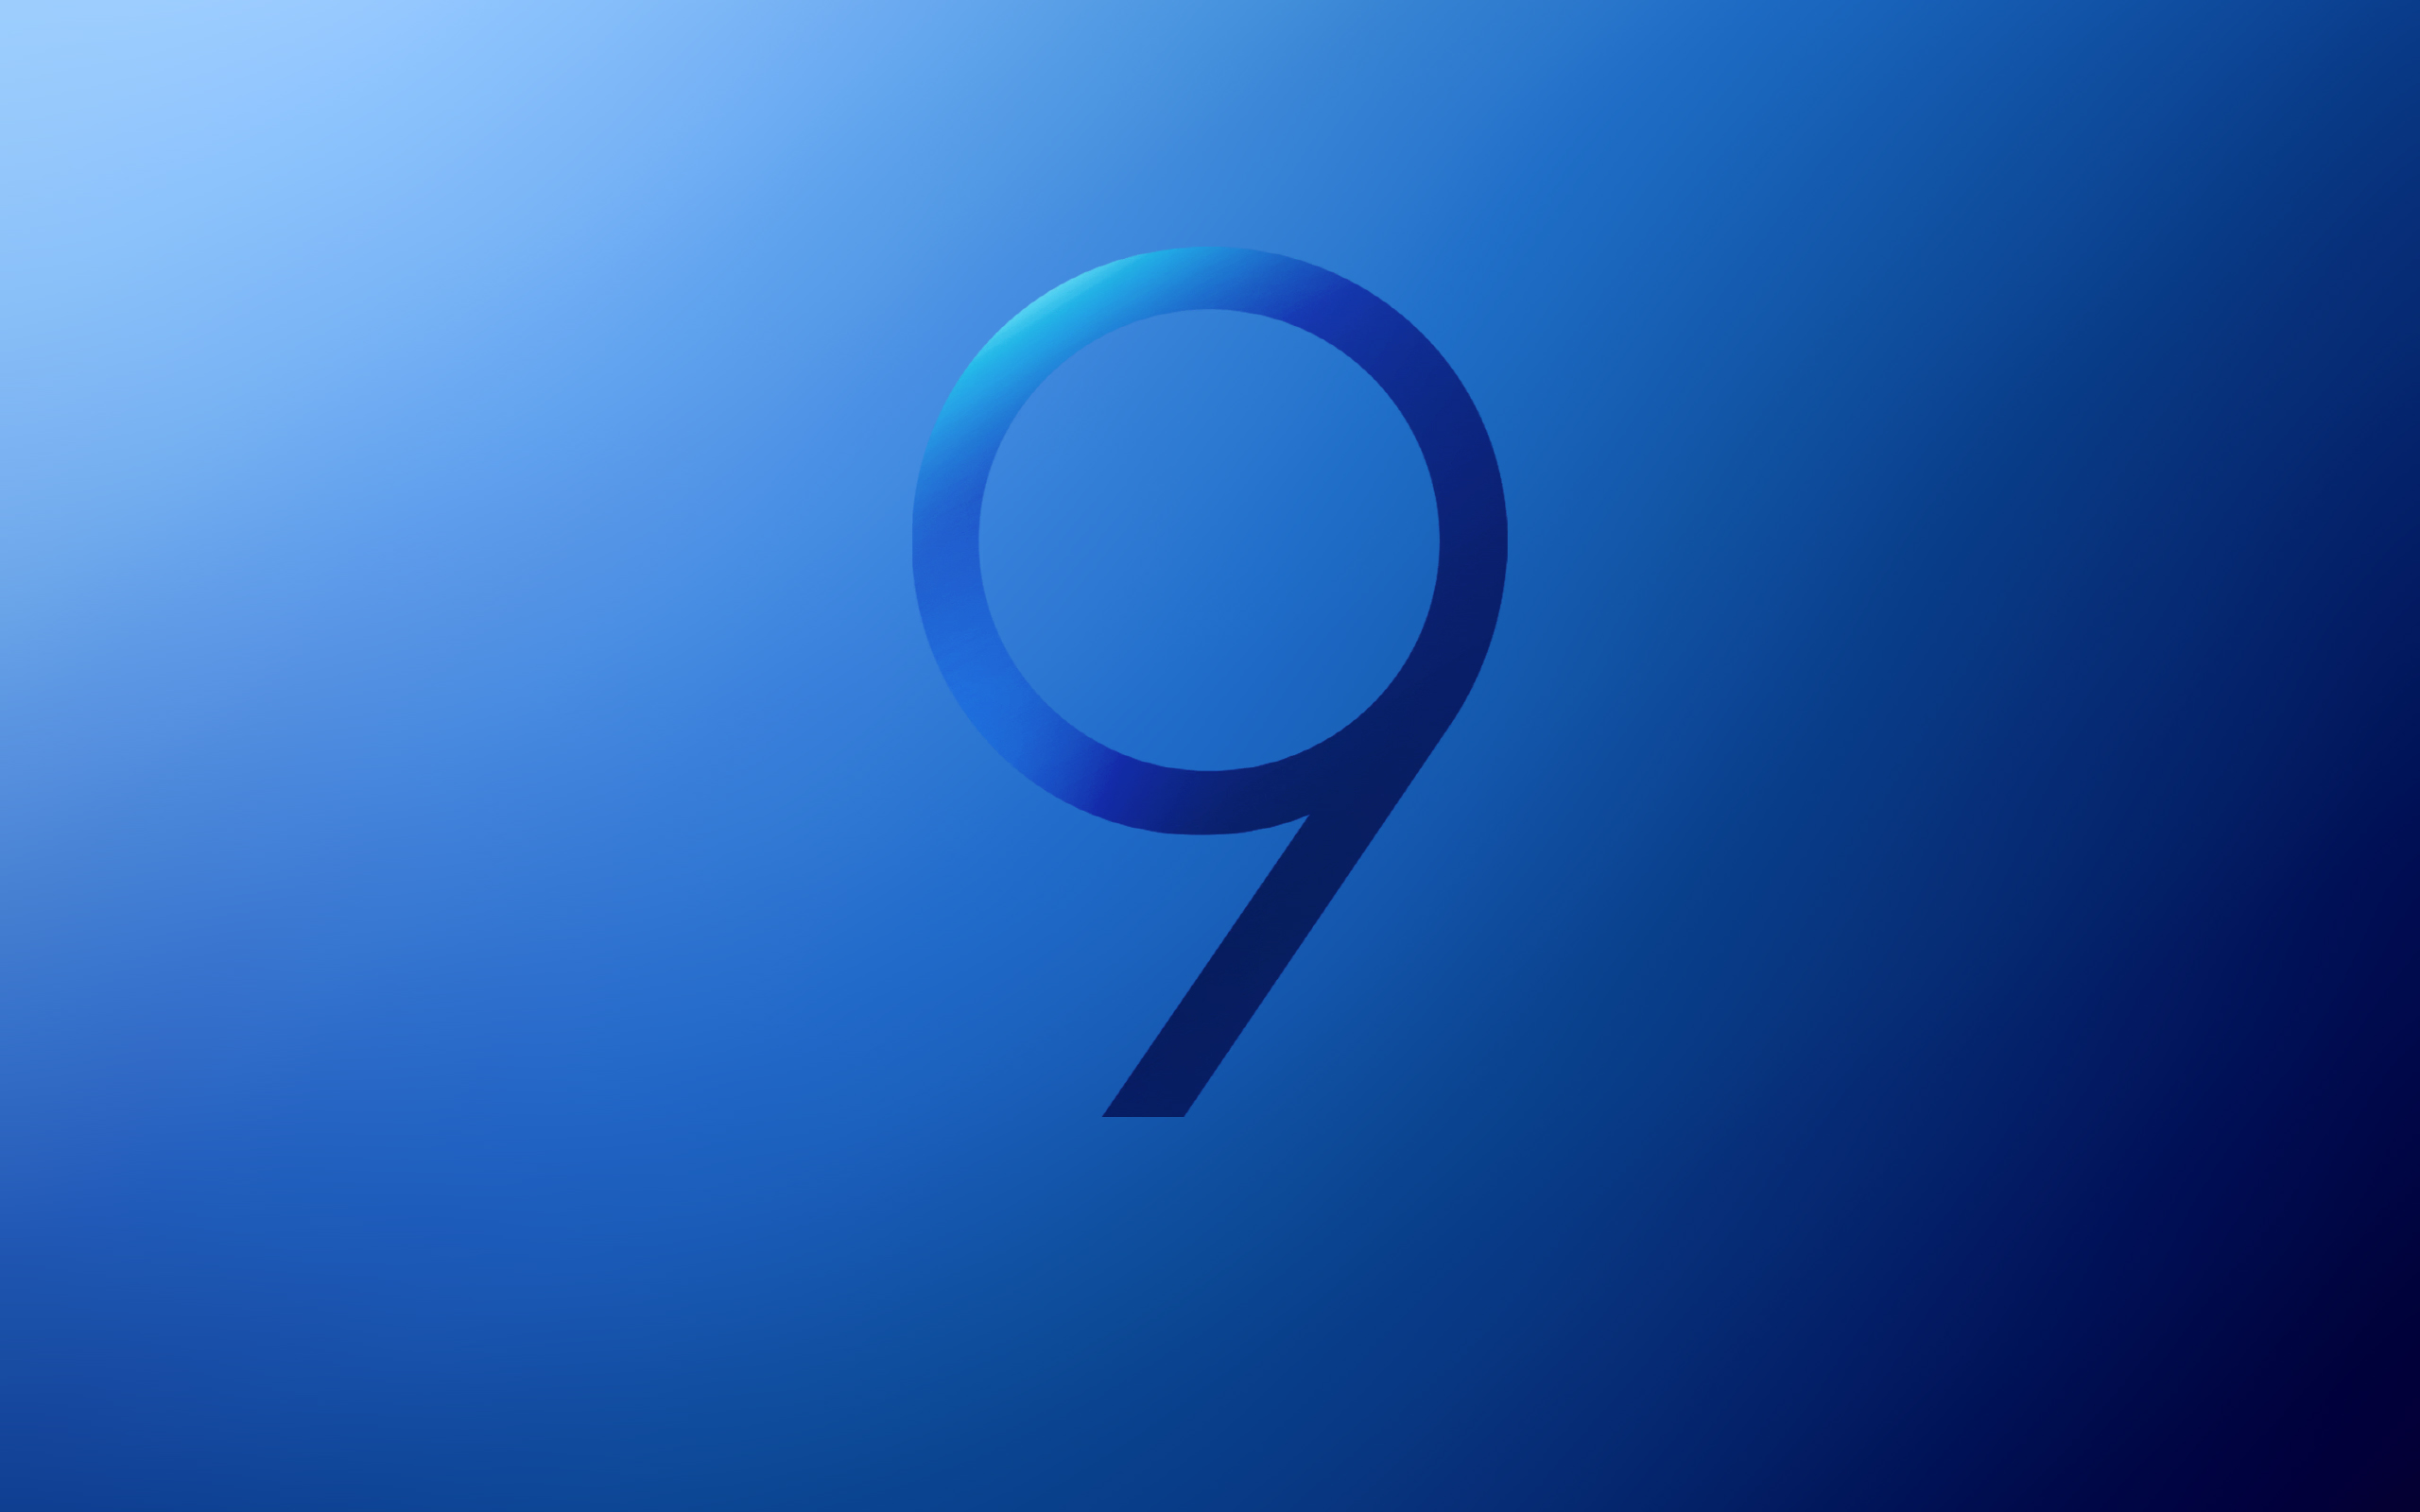 Wallpaper 4k Samsung Galaxy S9 Stock Blue Blue Galaxy